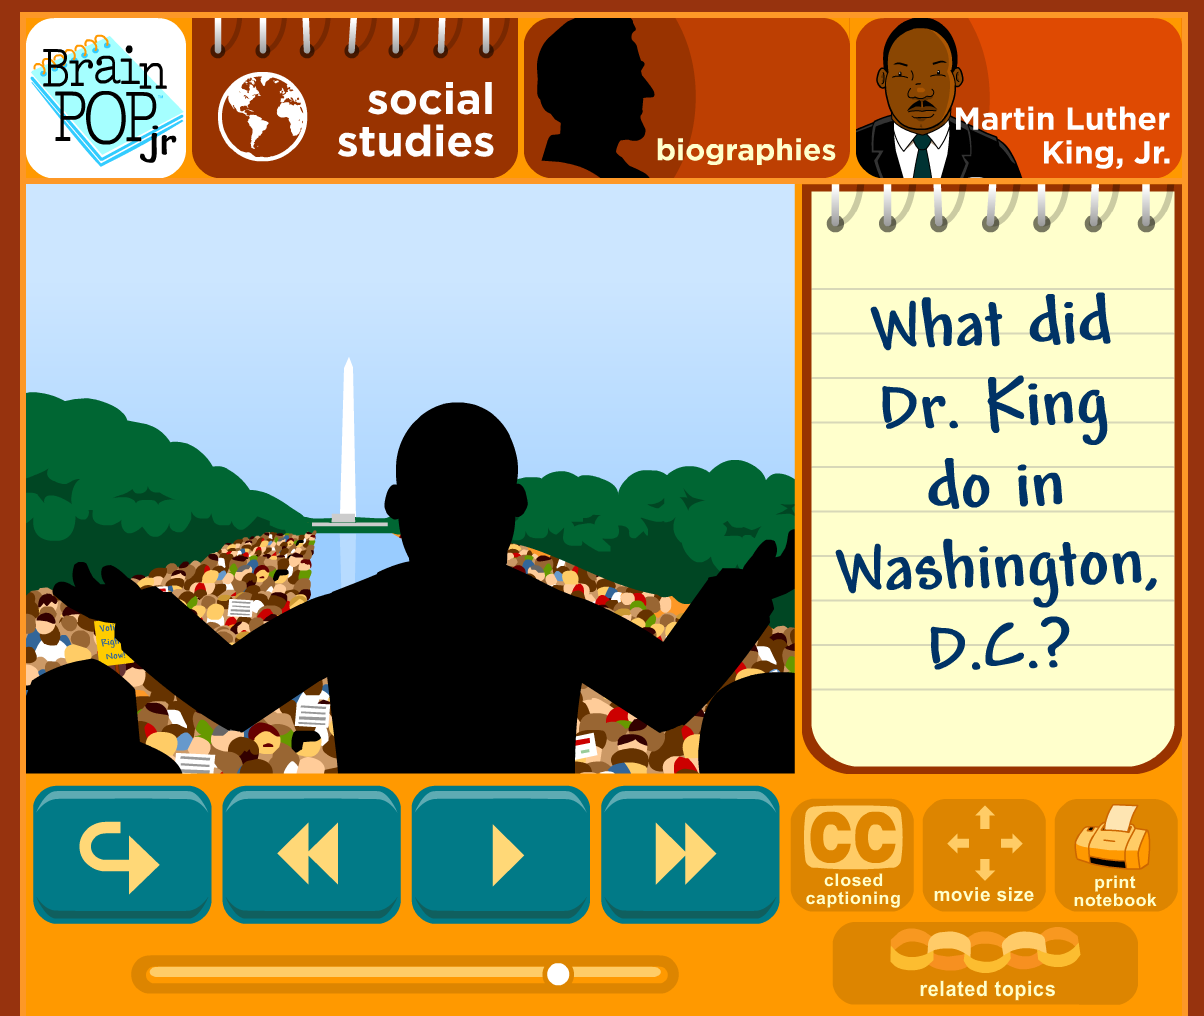 Uncategorized Brainpop Mlk martin luther king in 1st grade the brown bag teacher brainpop jr s free mlk video gives up a general overview and something to really dig into many of our graders have never heard dr